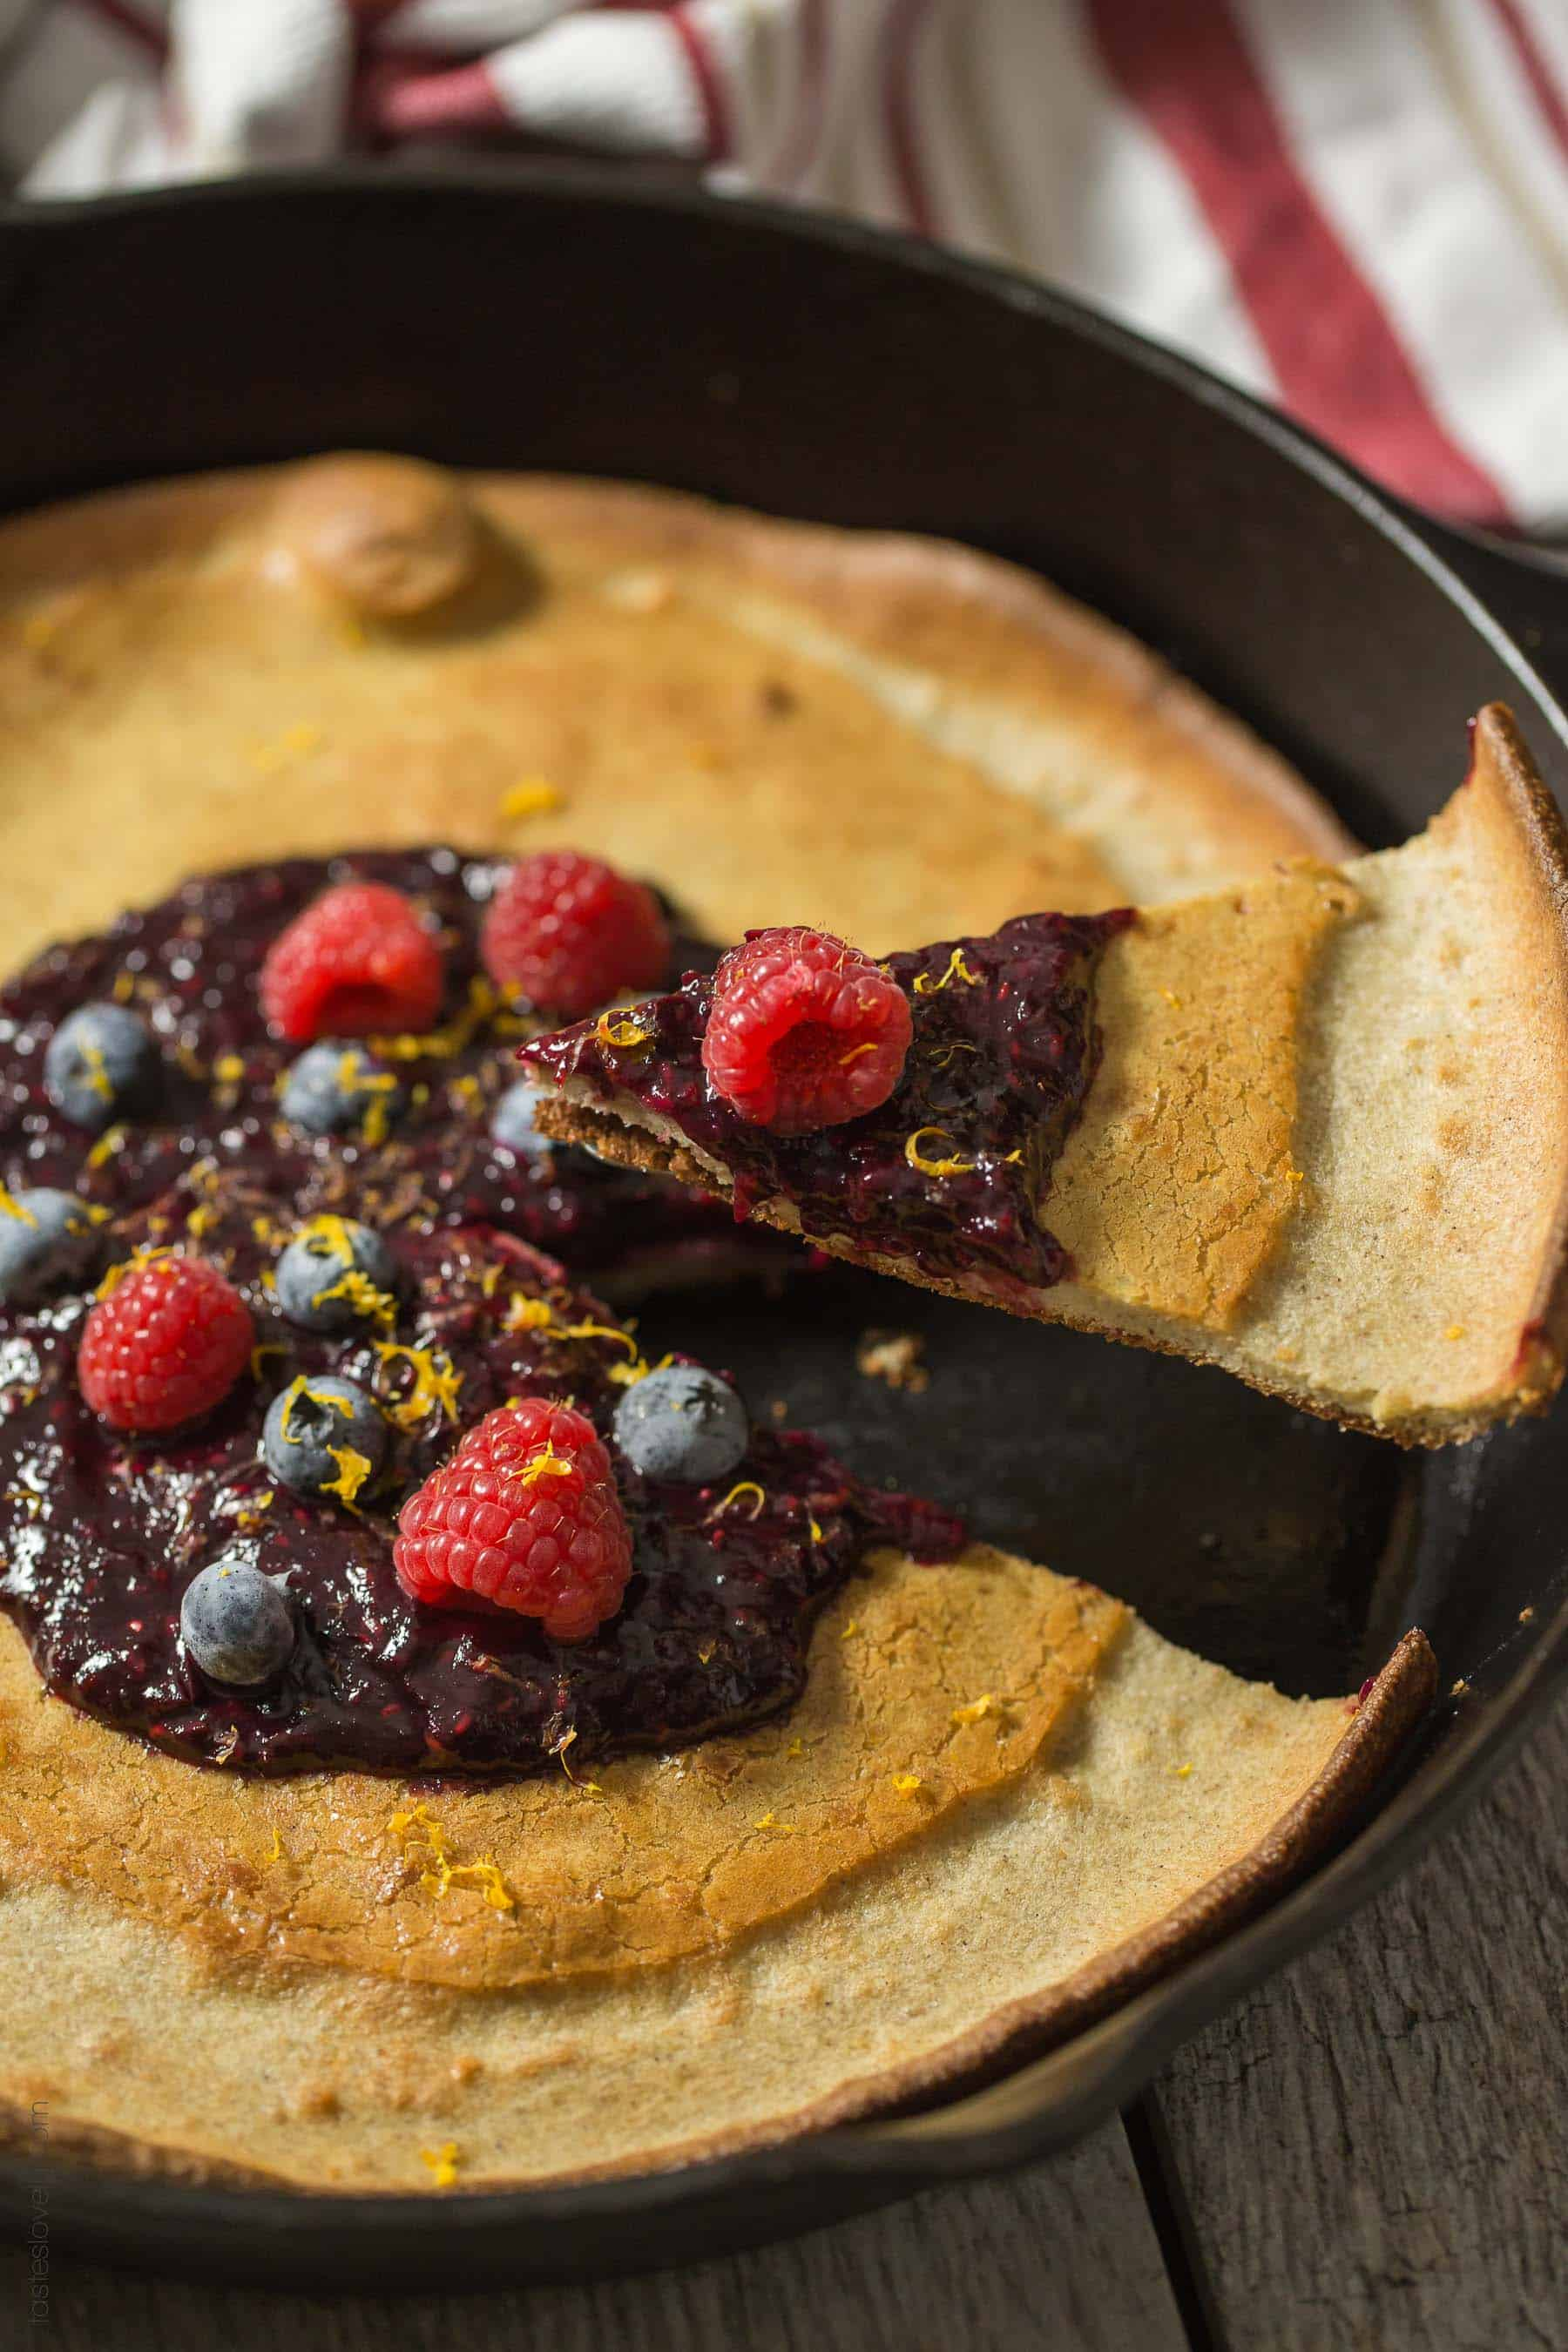 Paleo Dutch Baby with Orange Berry Compote - a healthy gluten free, paleo, dairy free, sugar free breakfast!